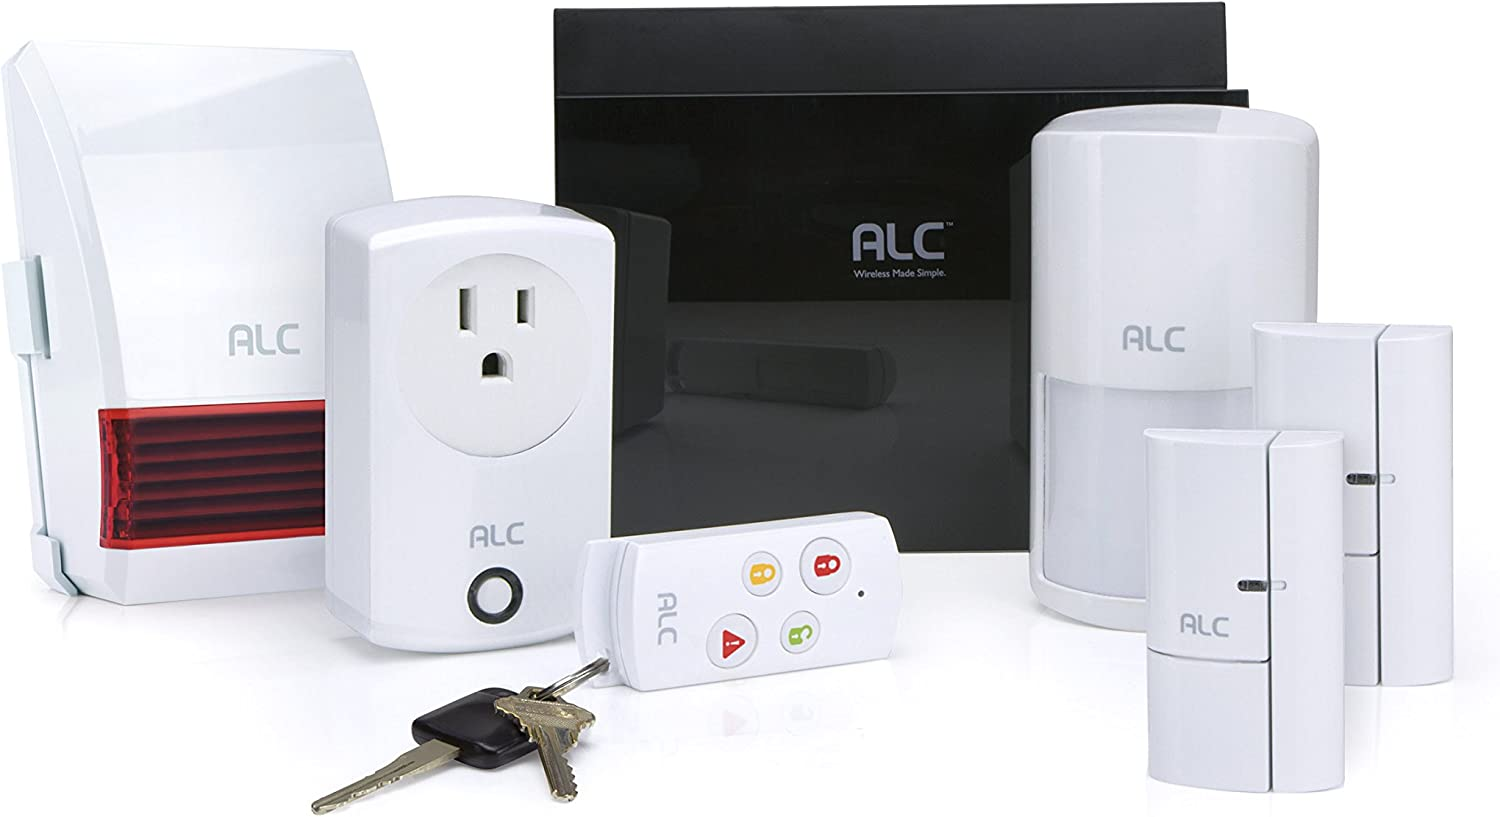 ALC AHS616 low-pricing Connect Home Max 48% OFF Wireless System DIY Self Security Monito